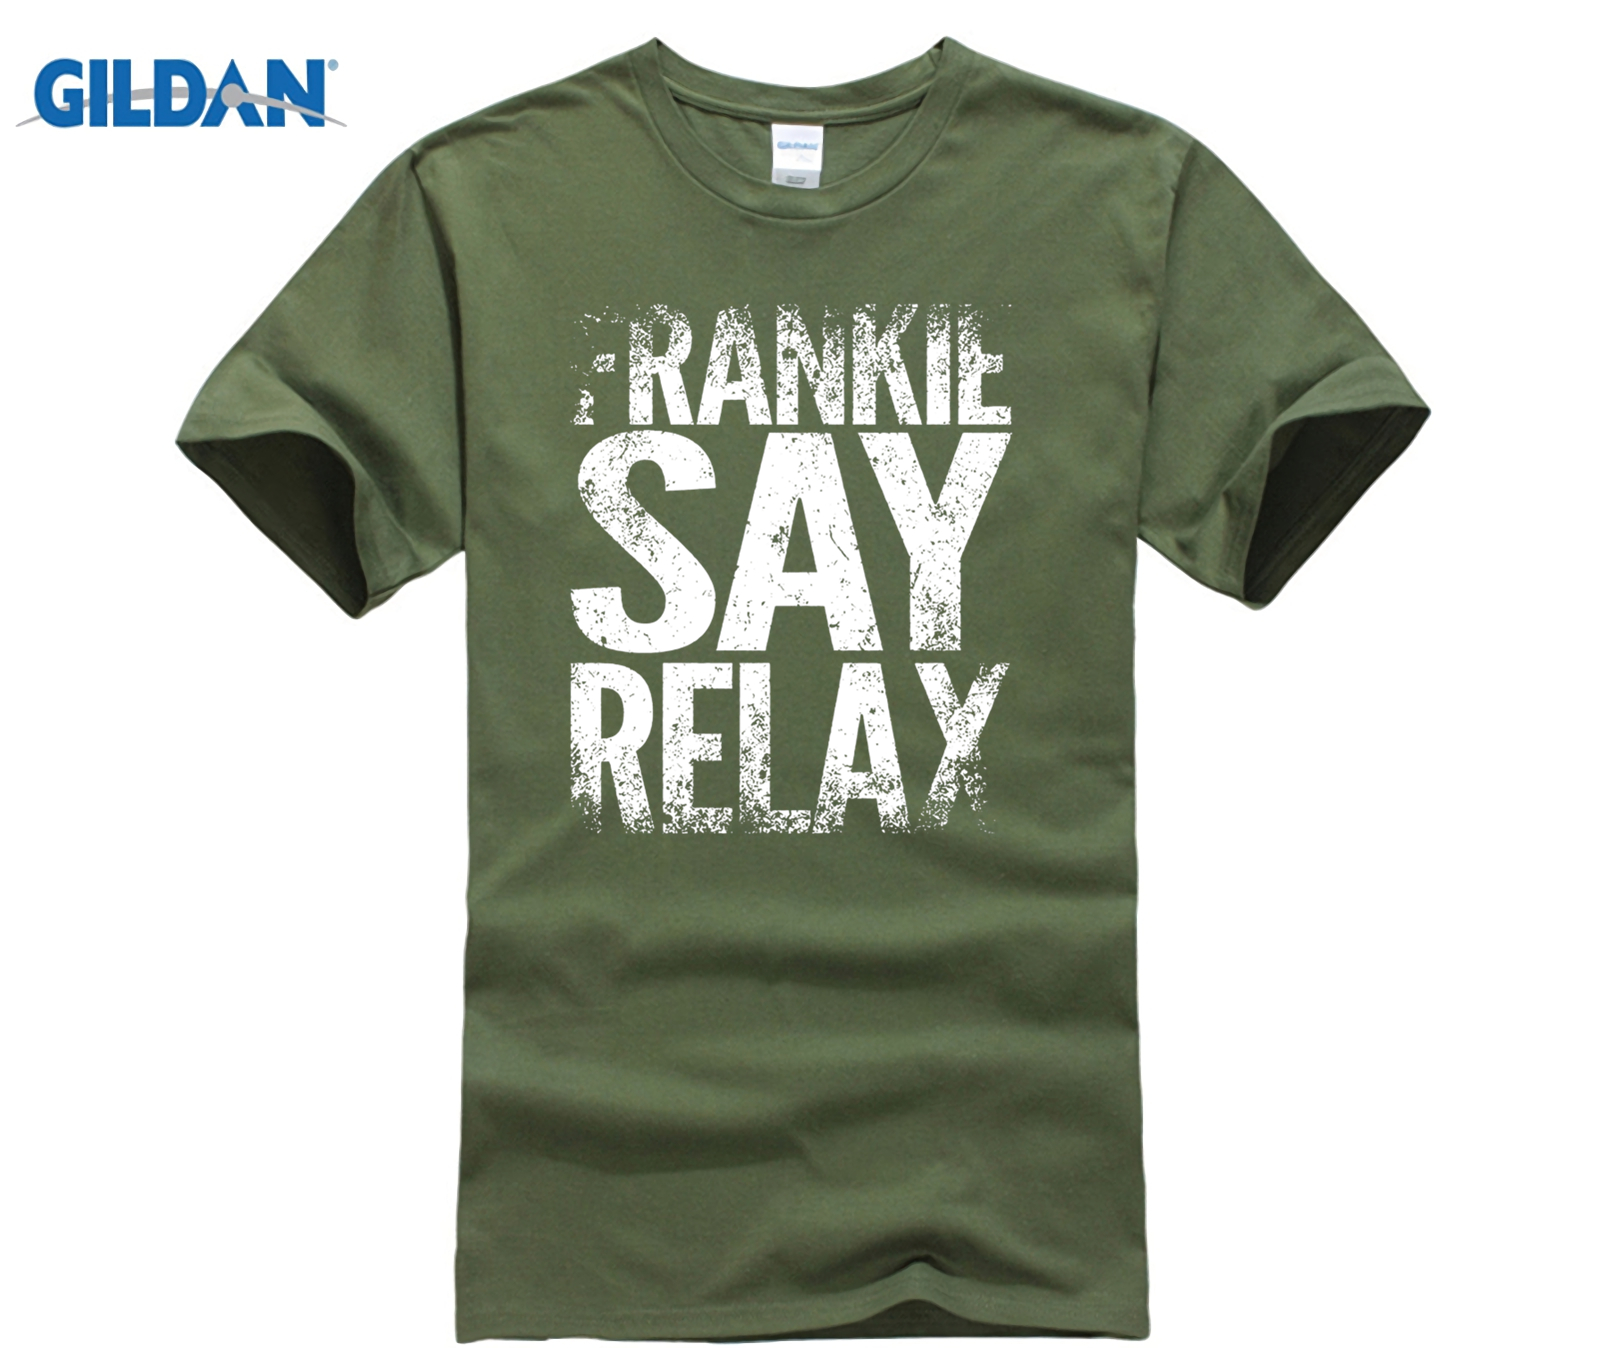 Frankie Say Relax Vintage Hollywood 80s Music Funny T-Shirt Size S-XXXL summer T-shirt image